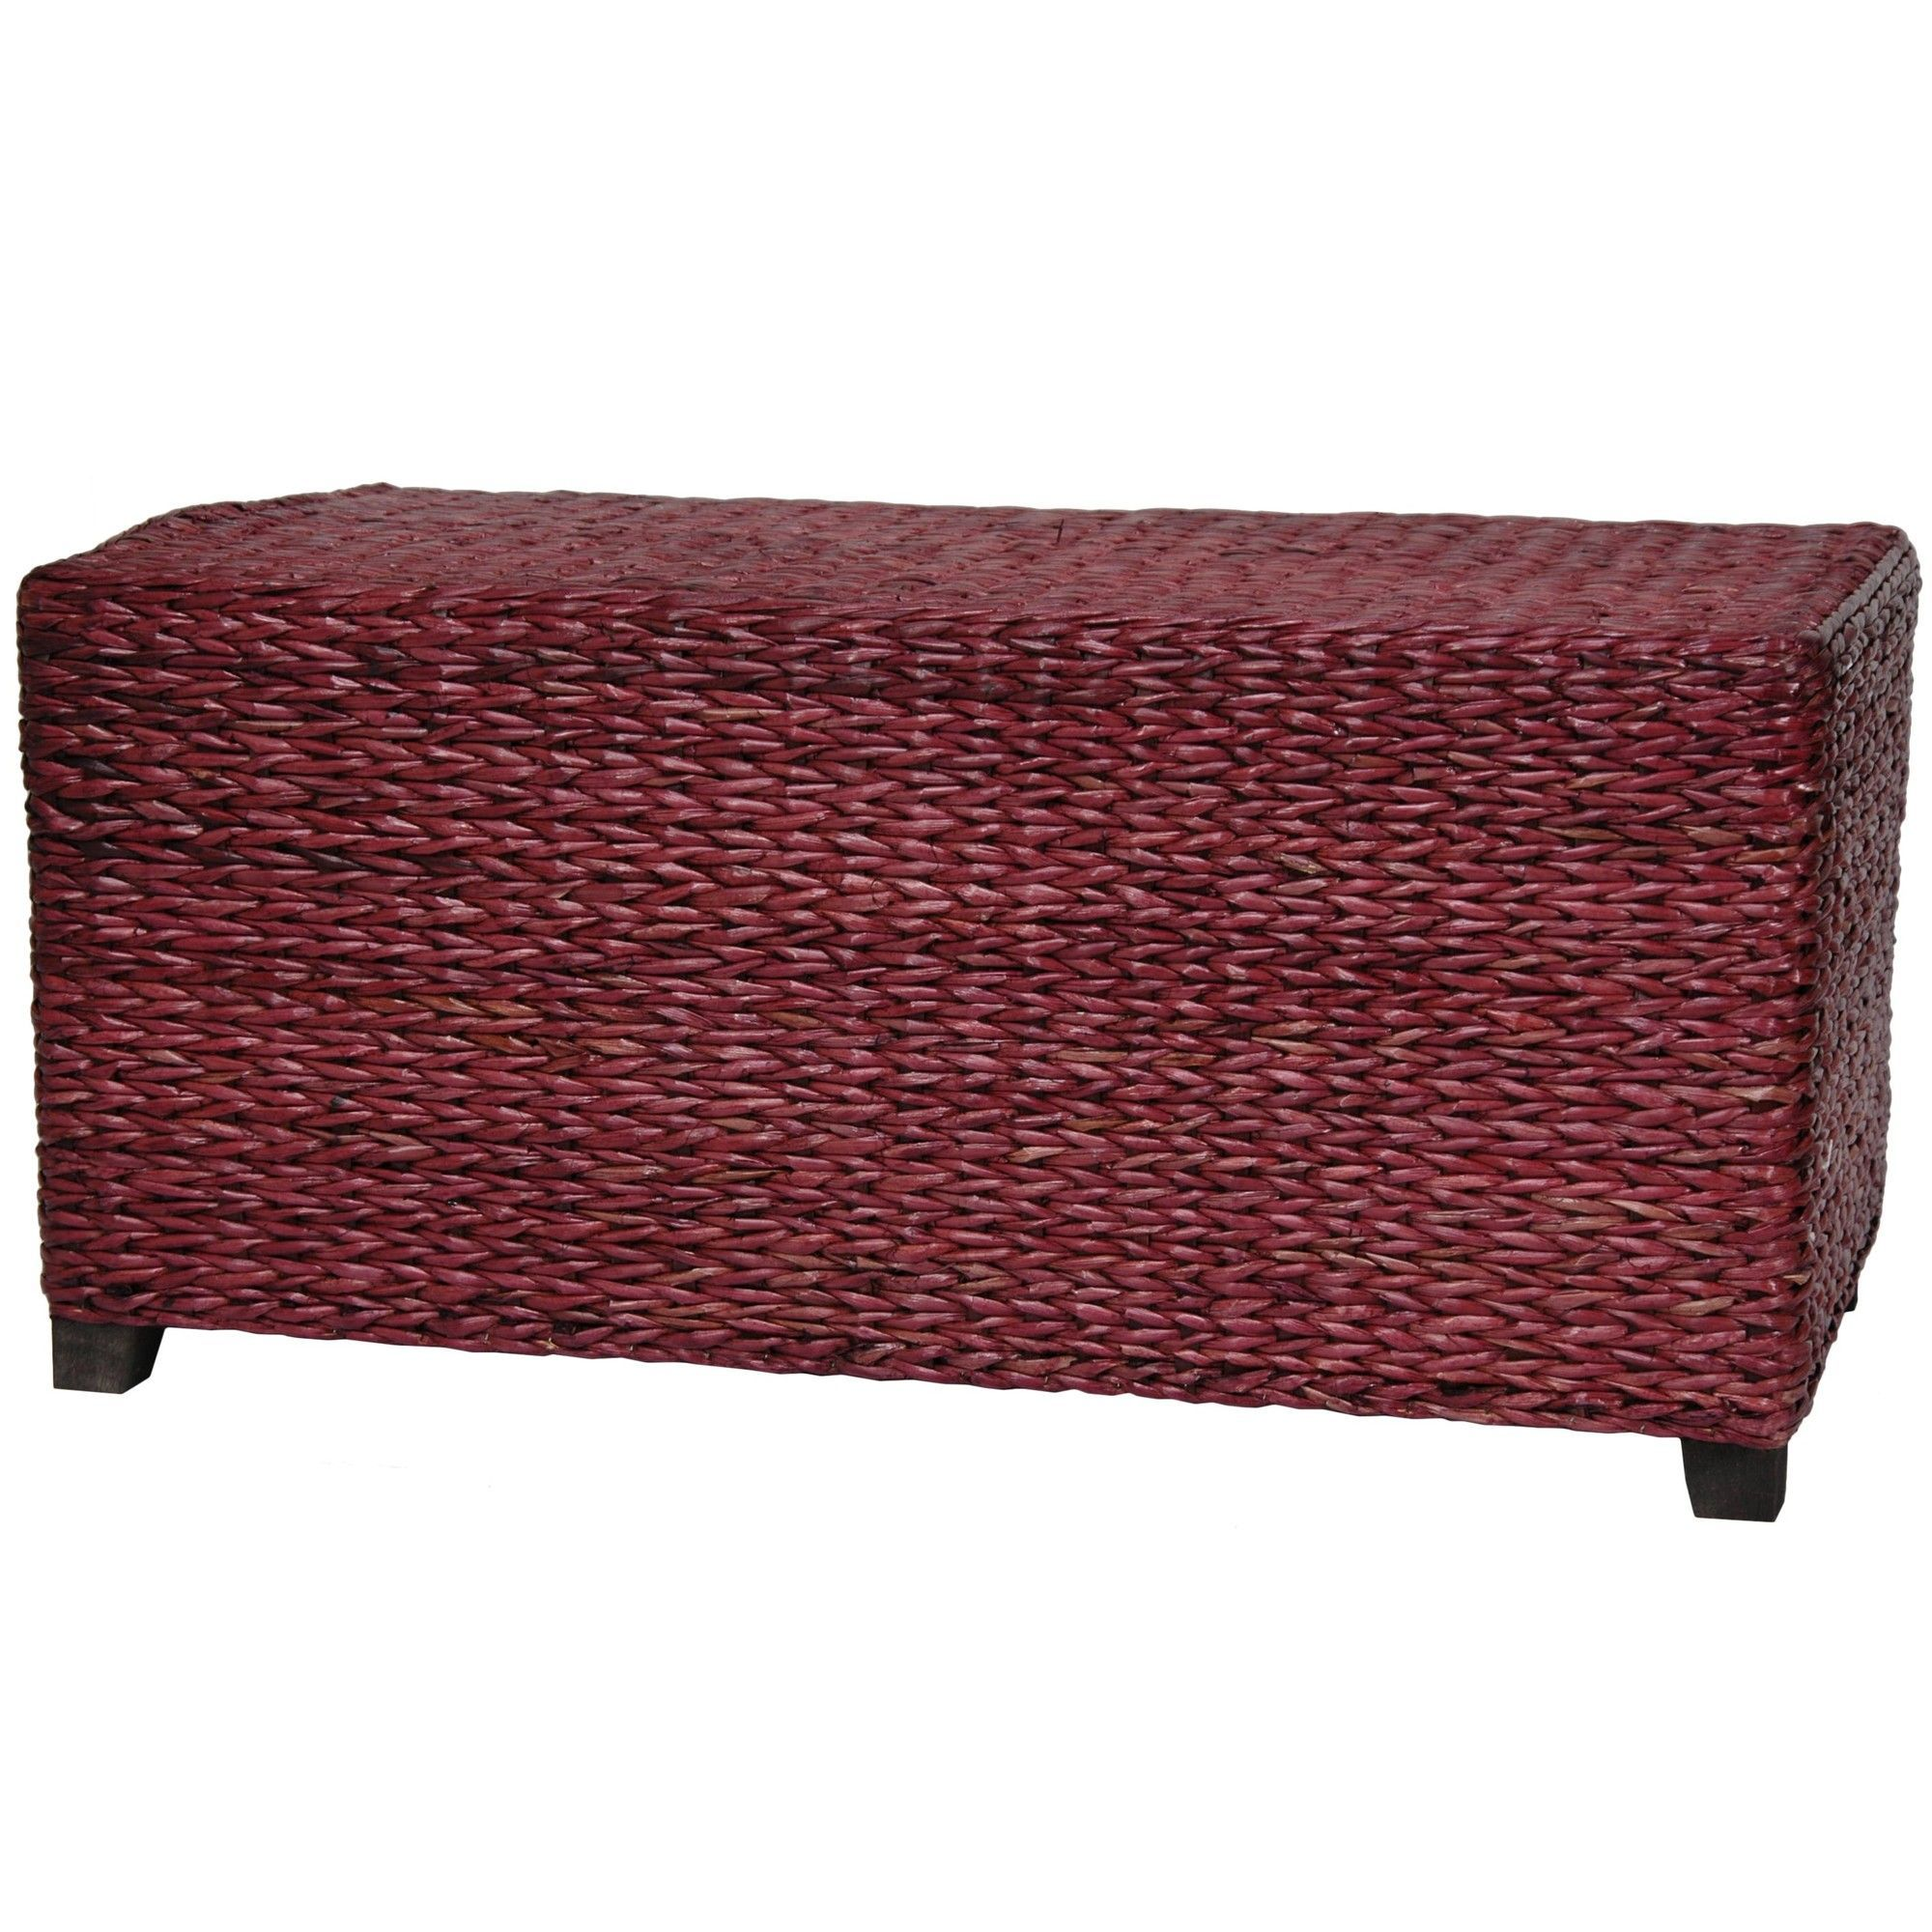 Rush Grass Coffee Table Products Pinterest